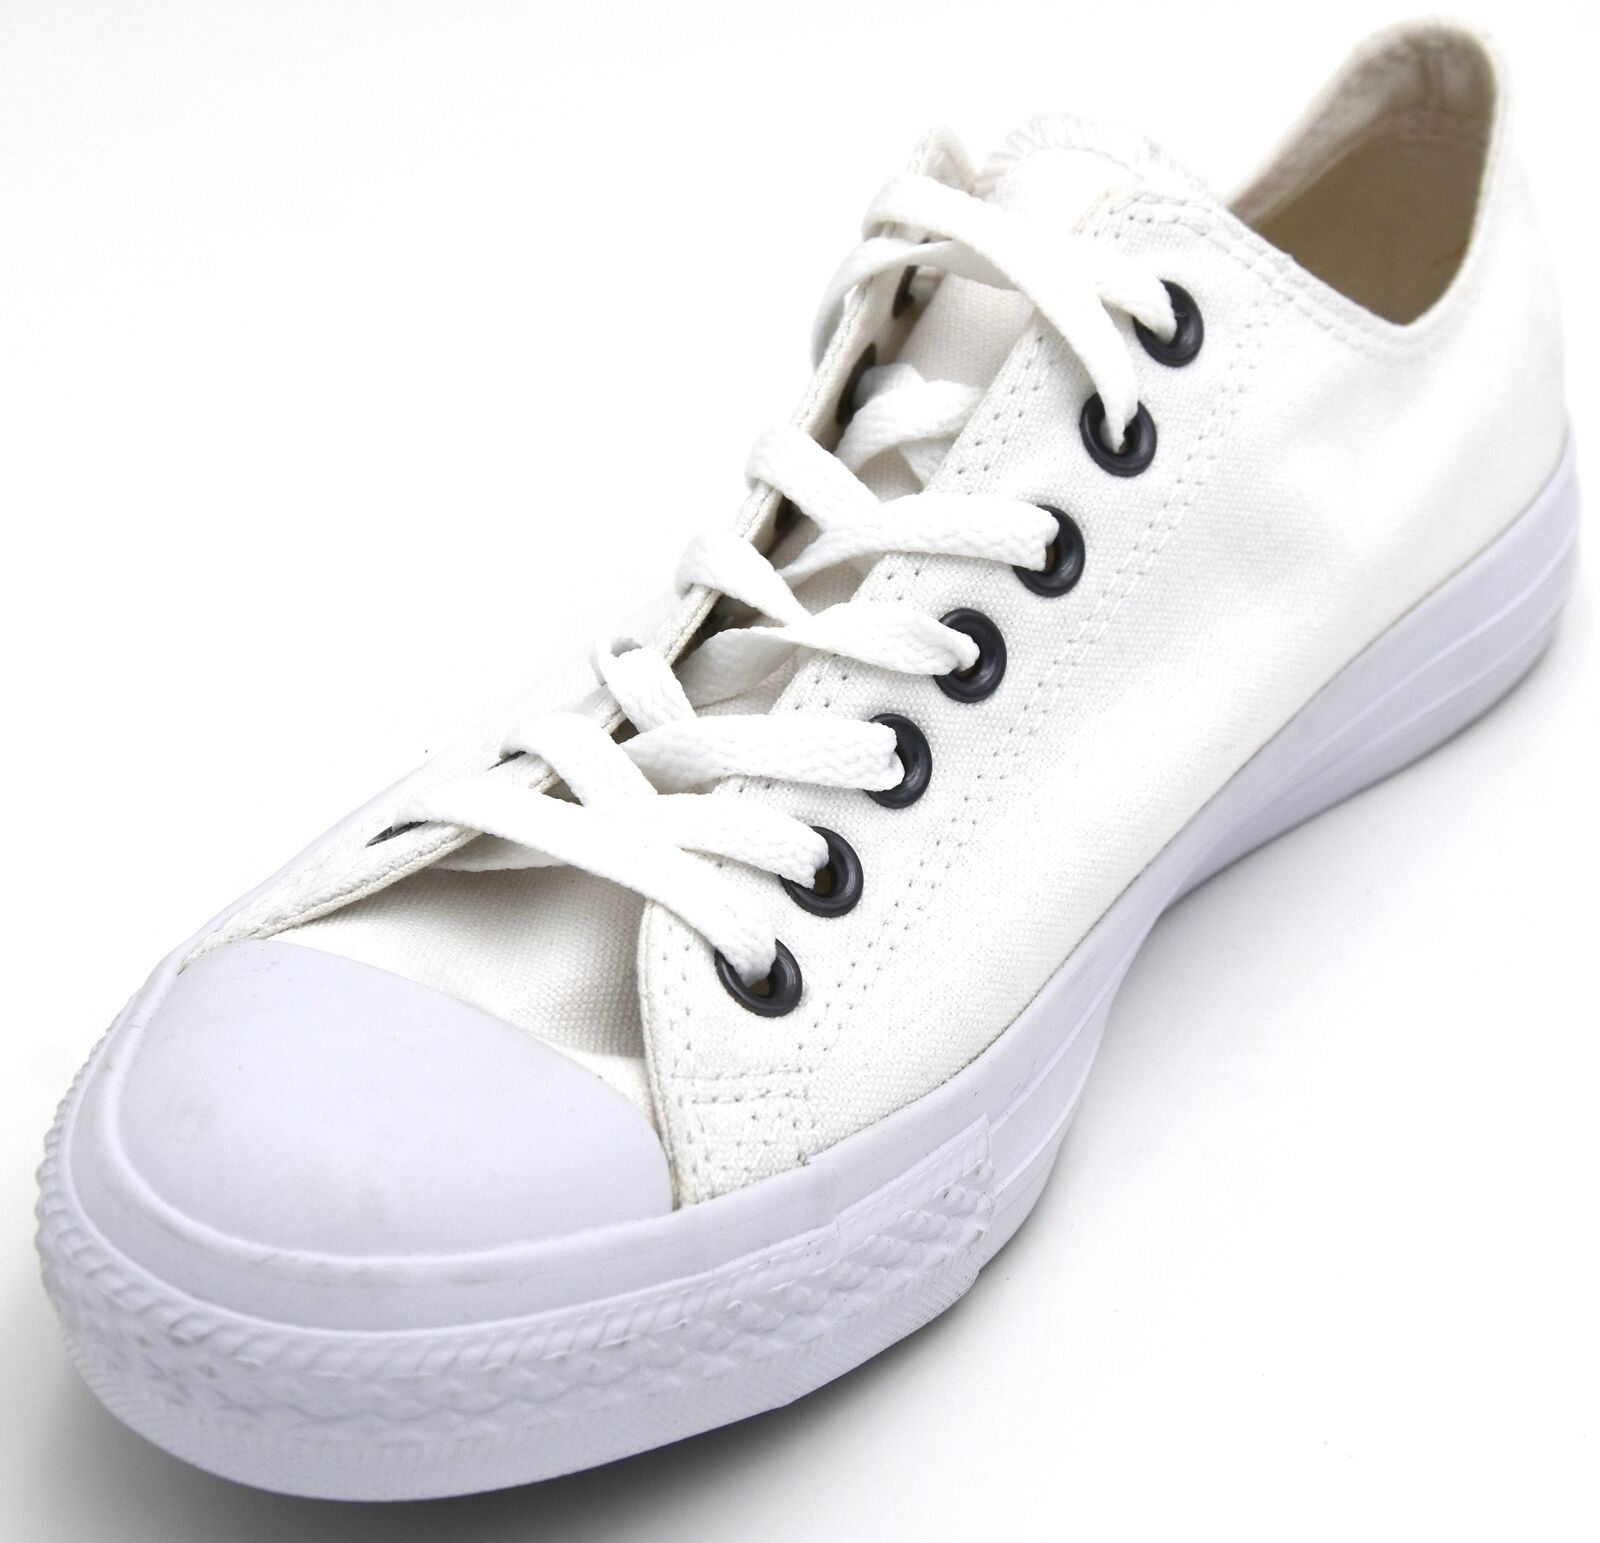 CONVERSE ALL STAR WOMAN MAN UNISEX SNEAKER SHOES CASUAL CODE CT AS SP OX DEFECT